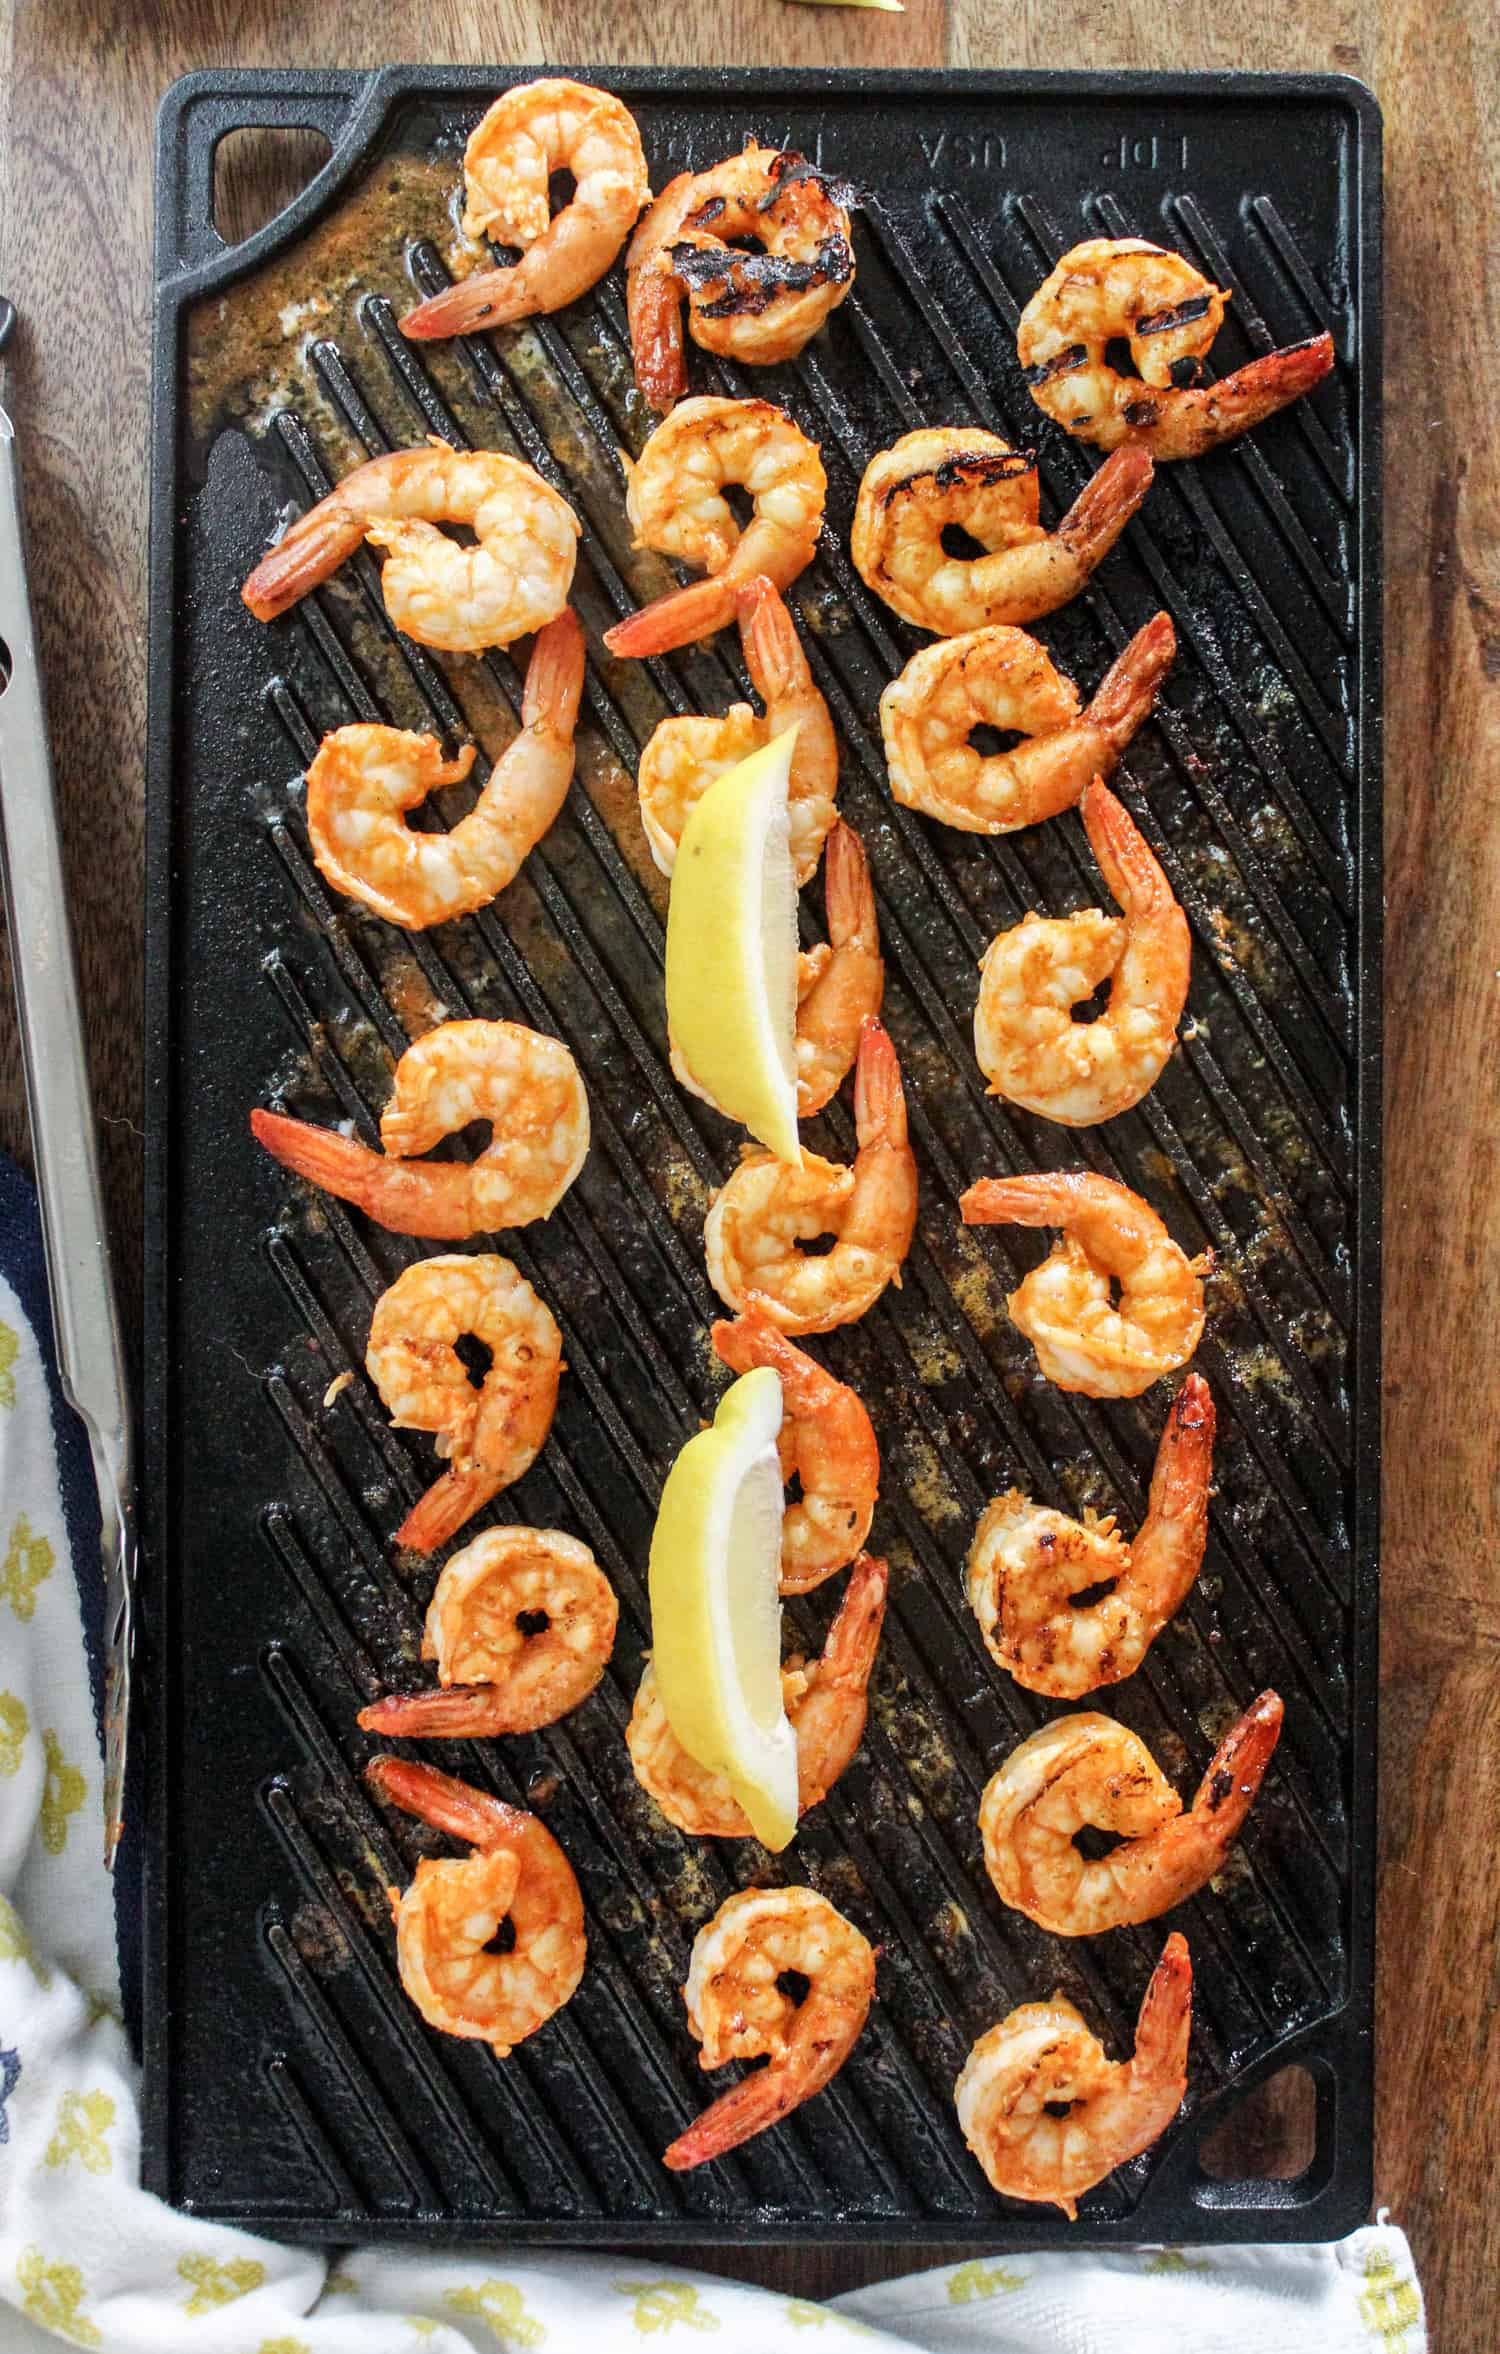 shrimp on grill pan with lemon slices